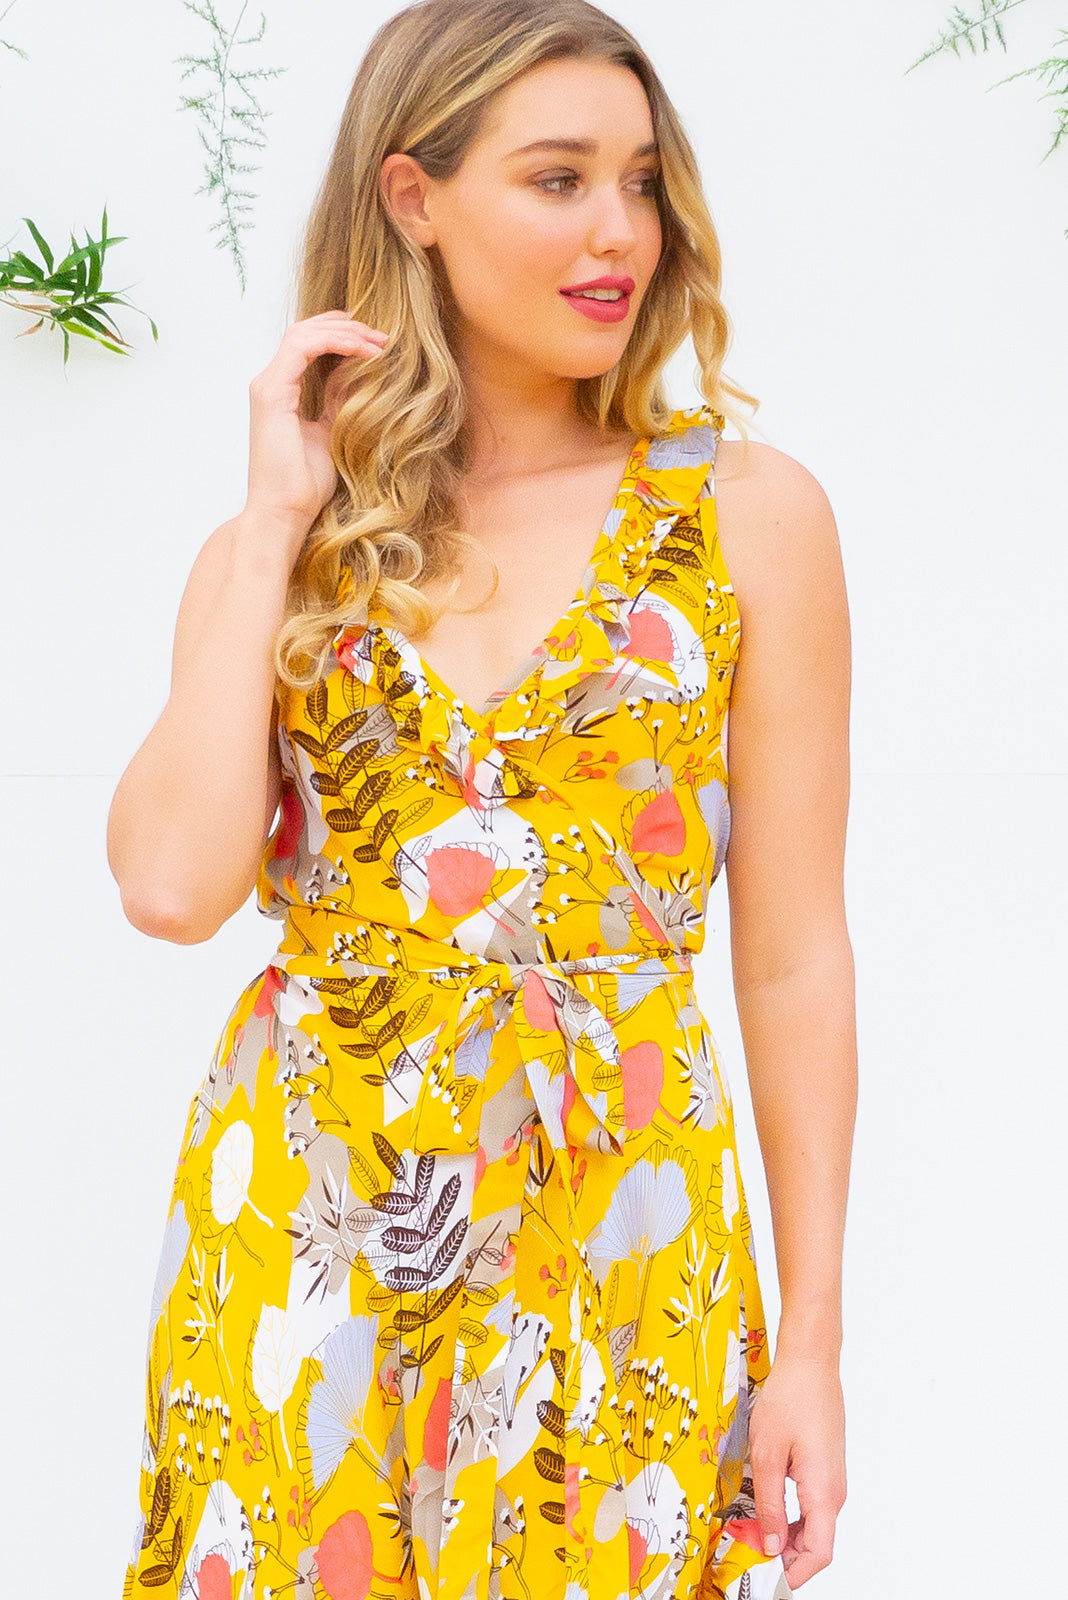 Paloma Yellow Vintage Wrap Dress features a flattering wrap around shape, sleeveless bodice with a frill and comes in bright golden yellow vintage inspired floral print woven rayon